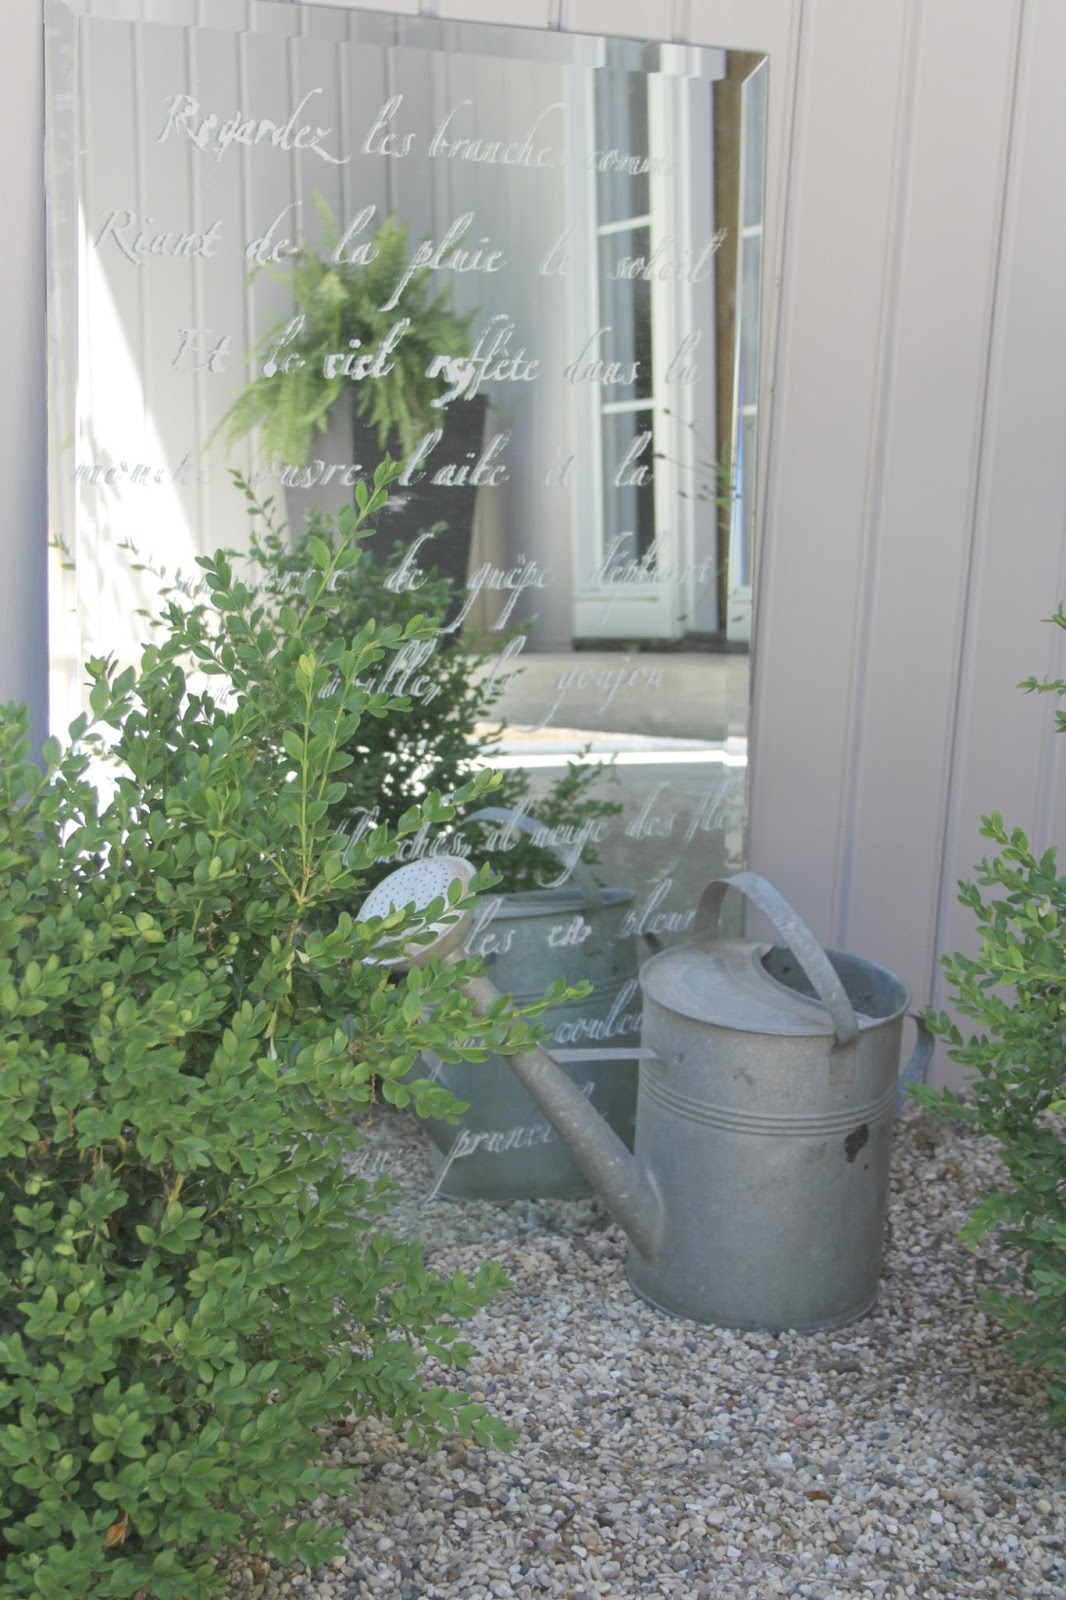 French farmhouse decor style in a courtyard garden with pea gravel, a vintage watering can, and a mirror stenciled with a French poem. #hellolovelystudio #frenchcountry #frenchfarmhouse #courtyard #stenciled #mirror